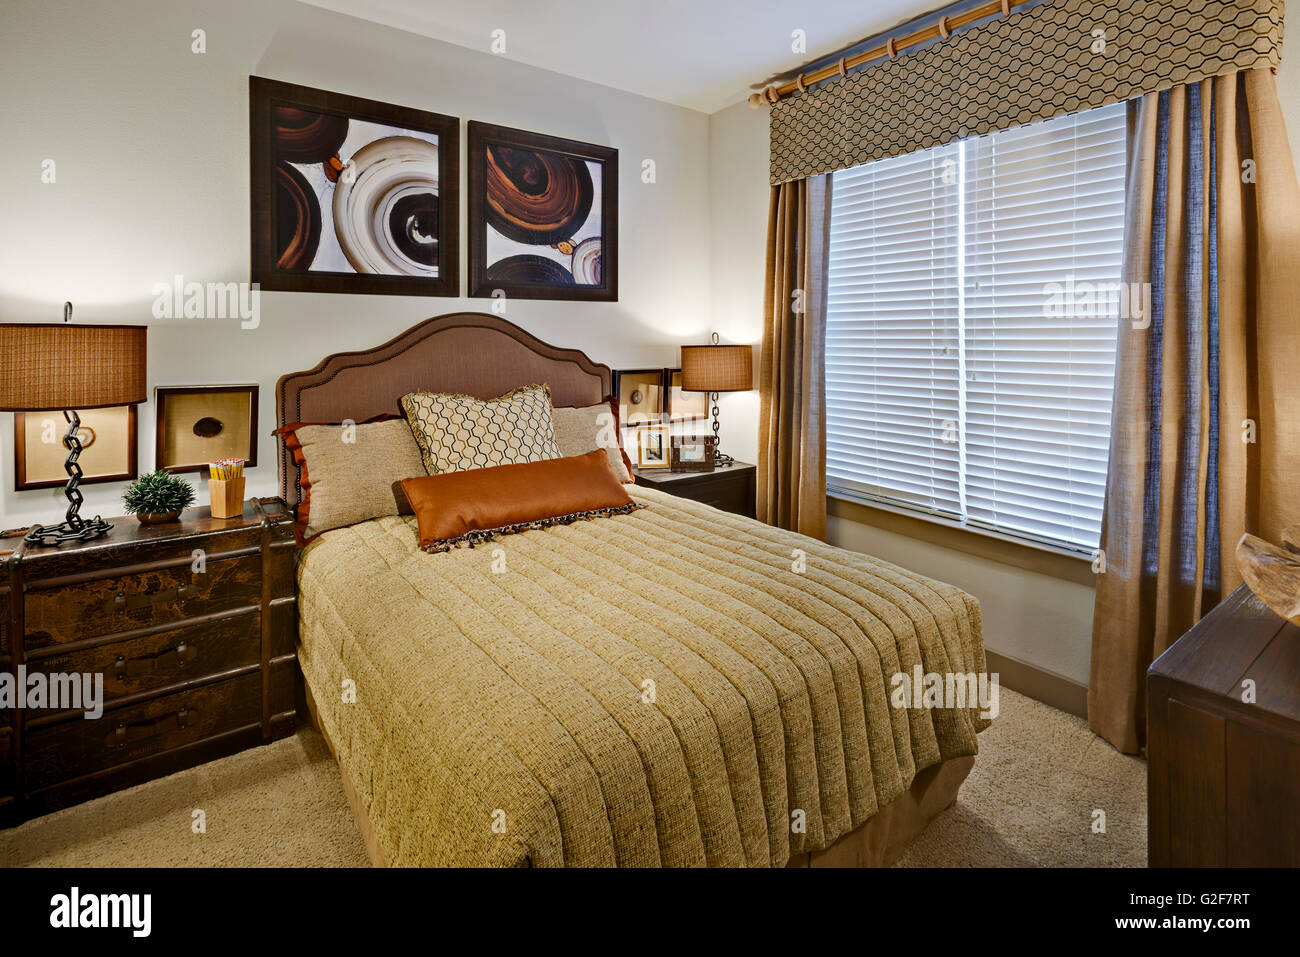 Small Bedroom with Full size Bed